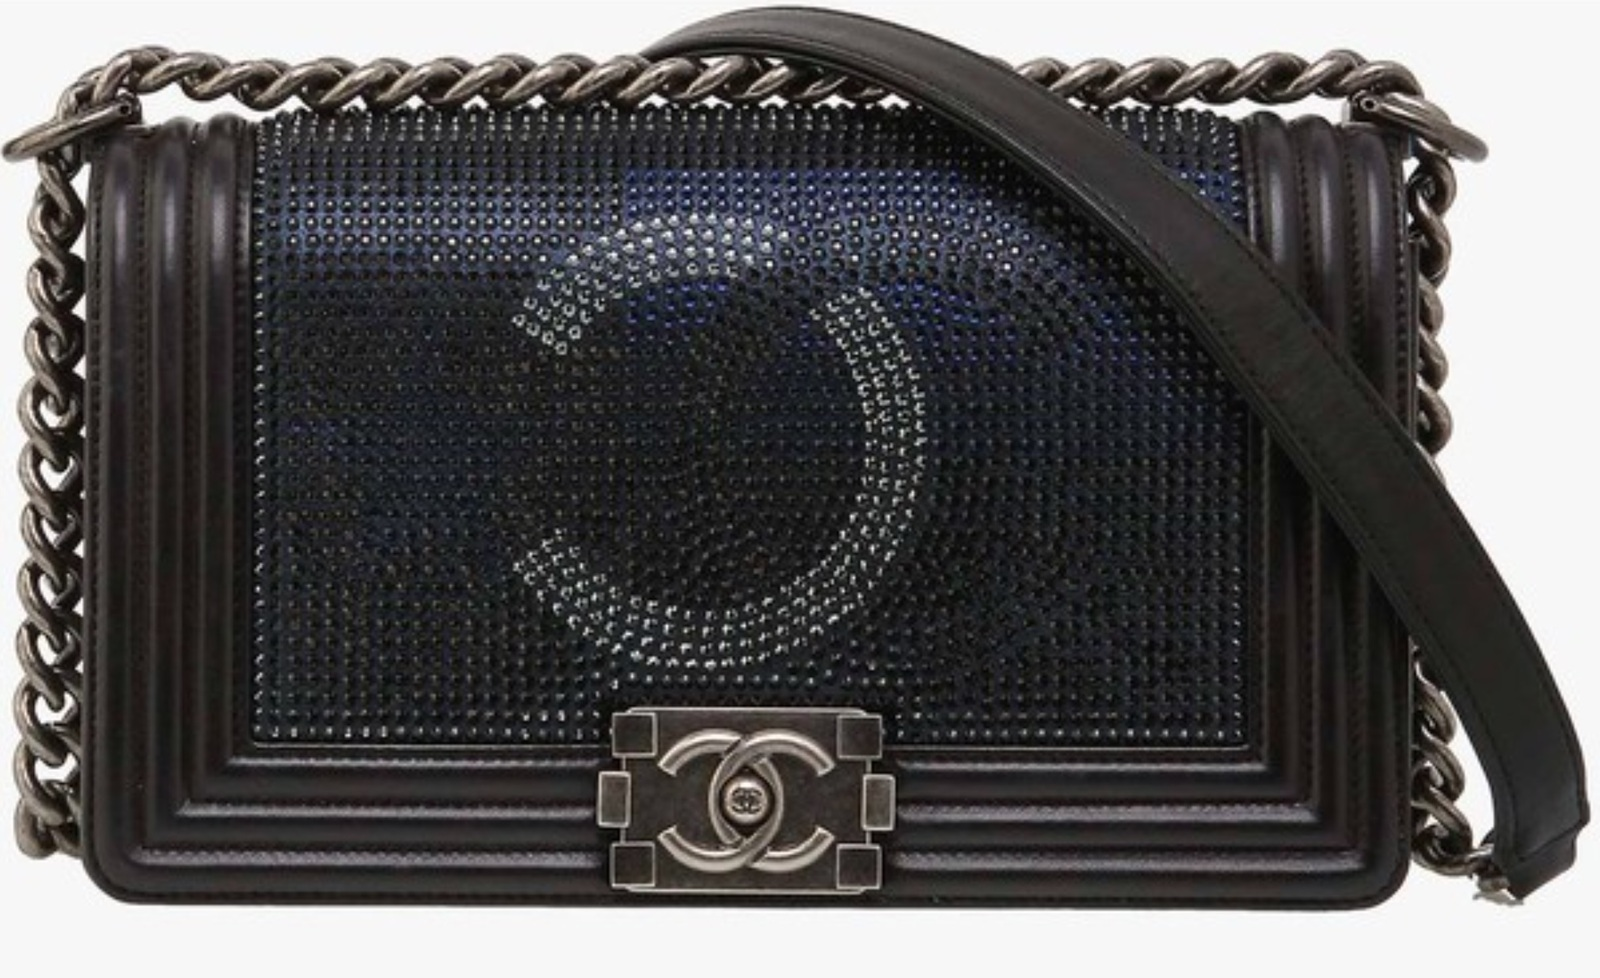 AUTH CHANEL LIMITED EDITION MIDNIGHT BLUE CRYSTAL LAMBSKIN MEDIUM ... 9d048c6a37925